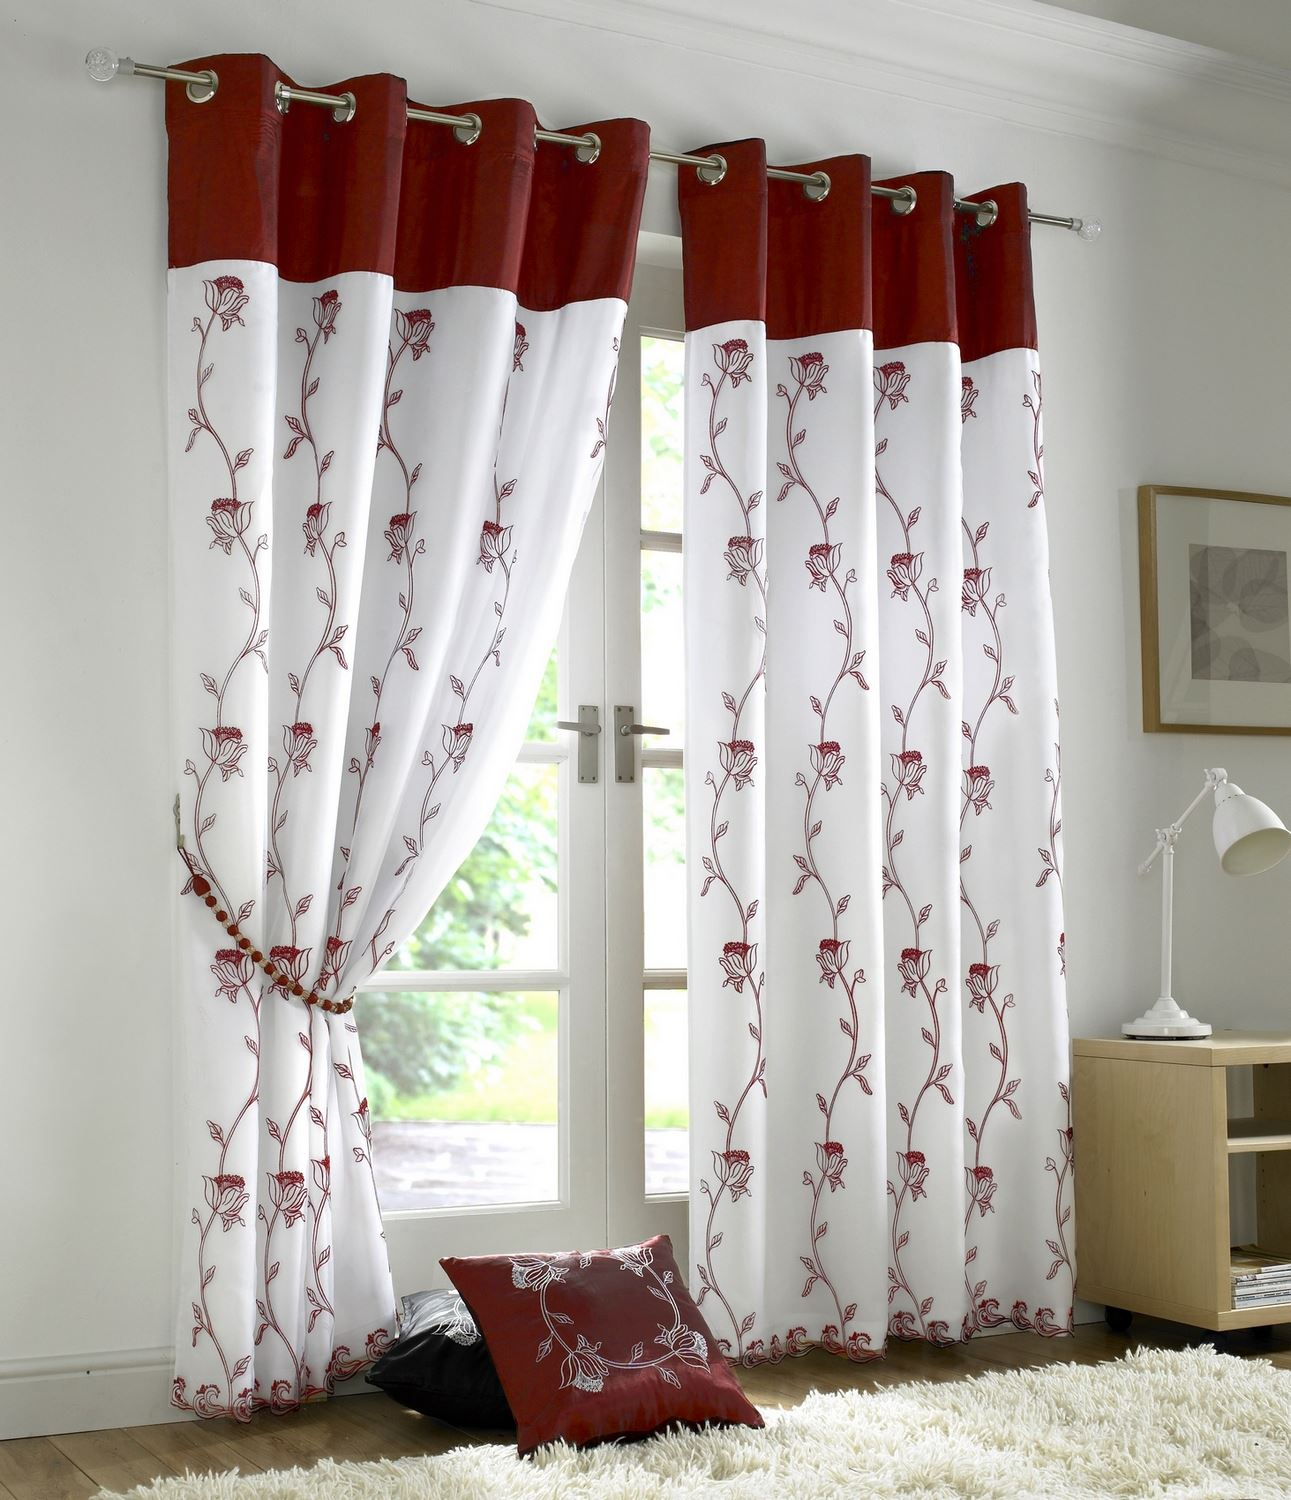 How To Make Ringed Curtains